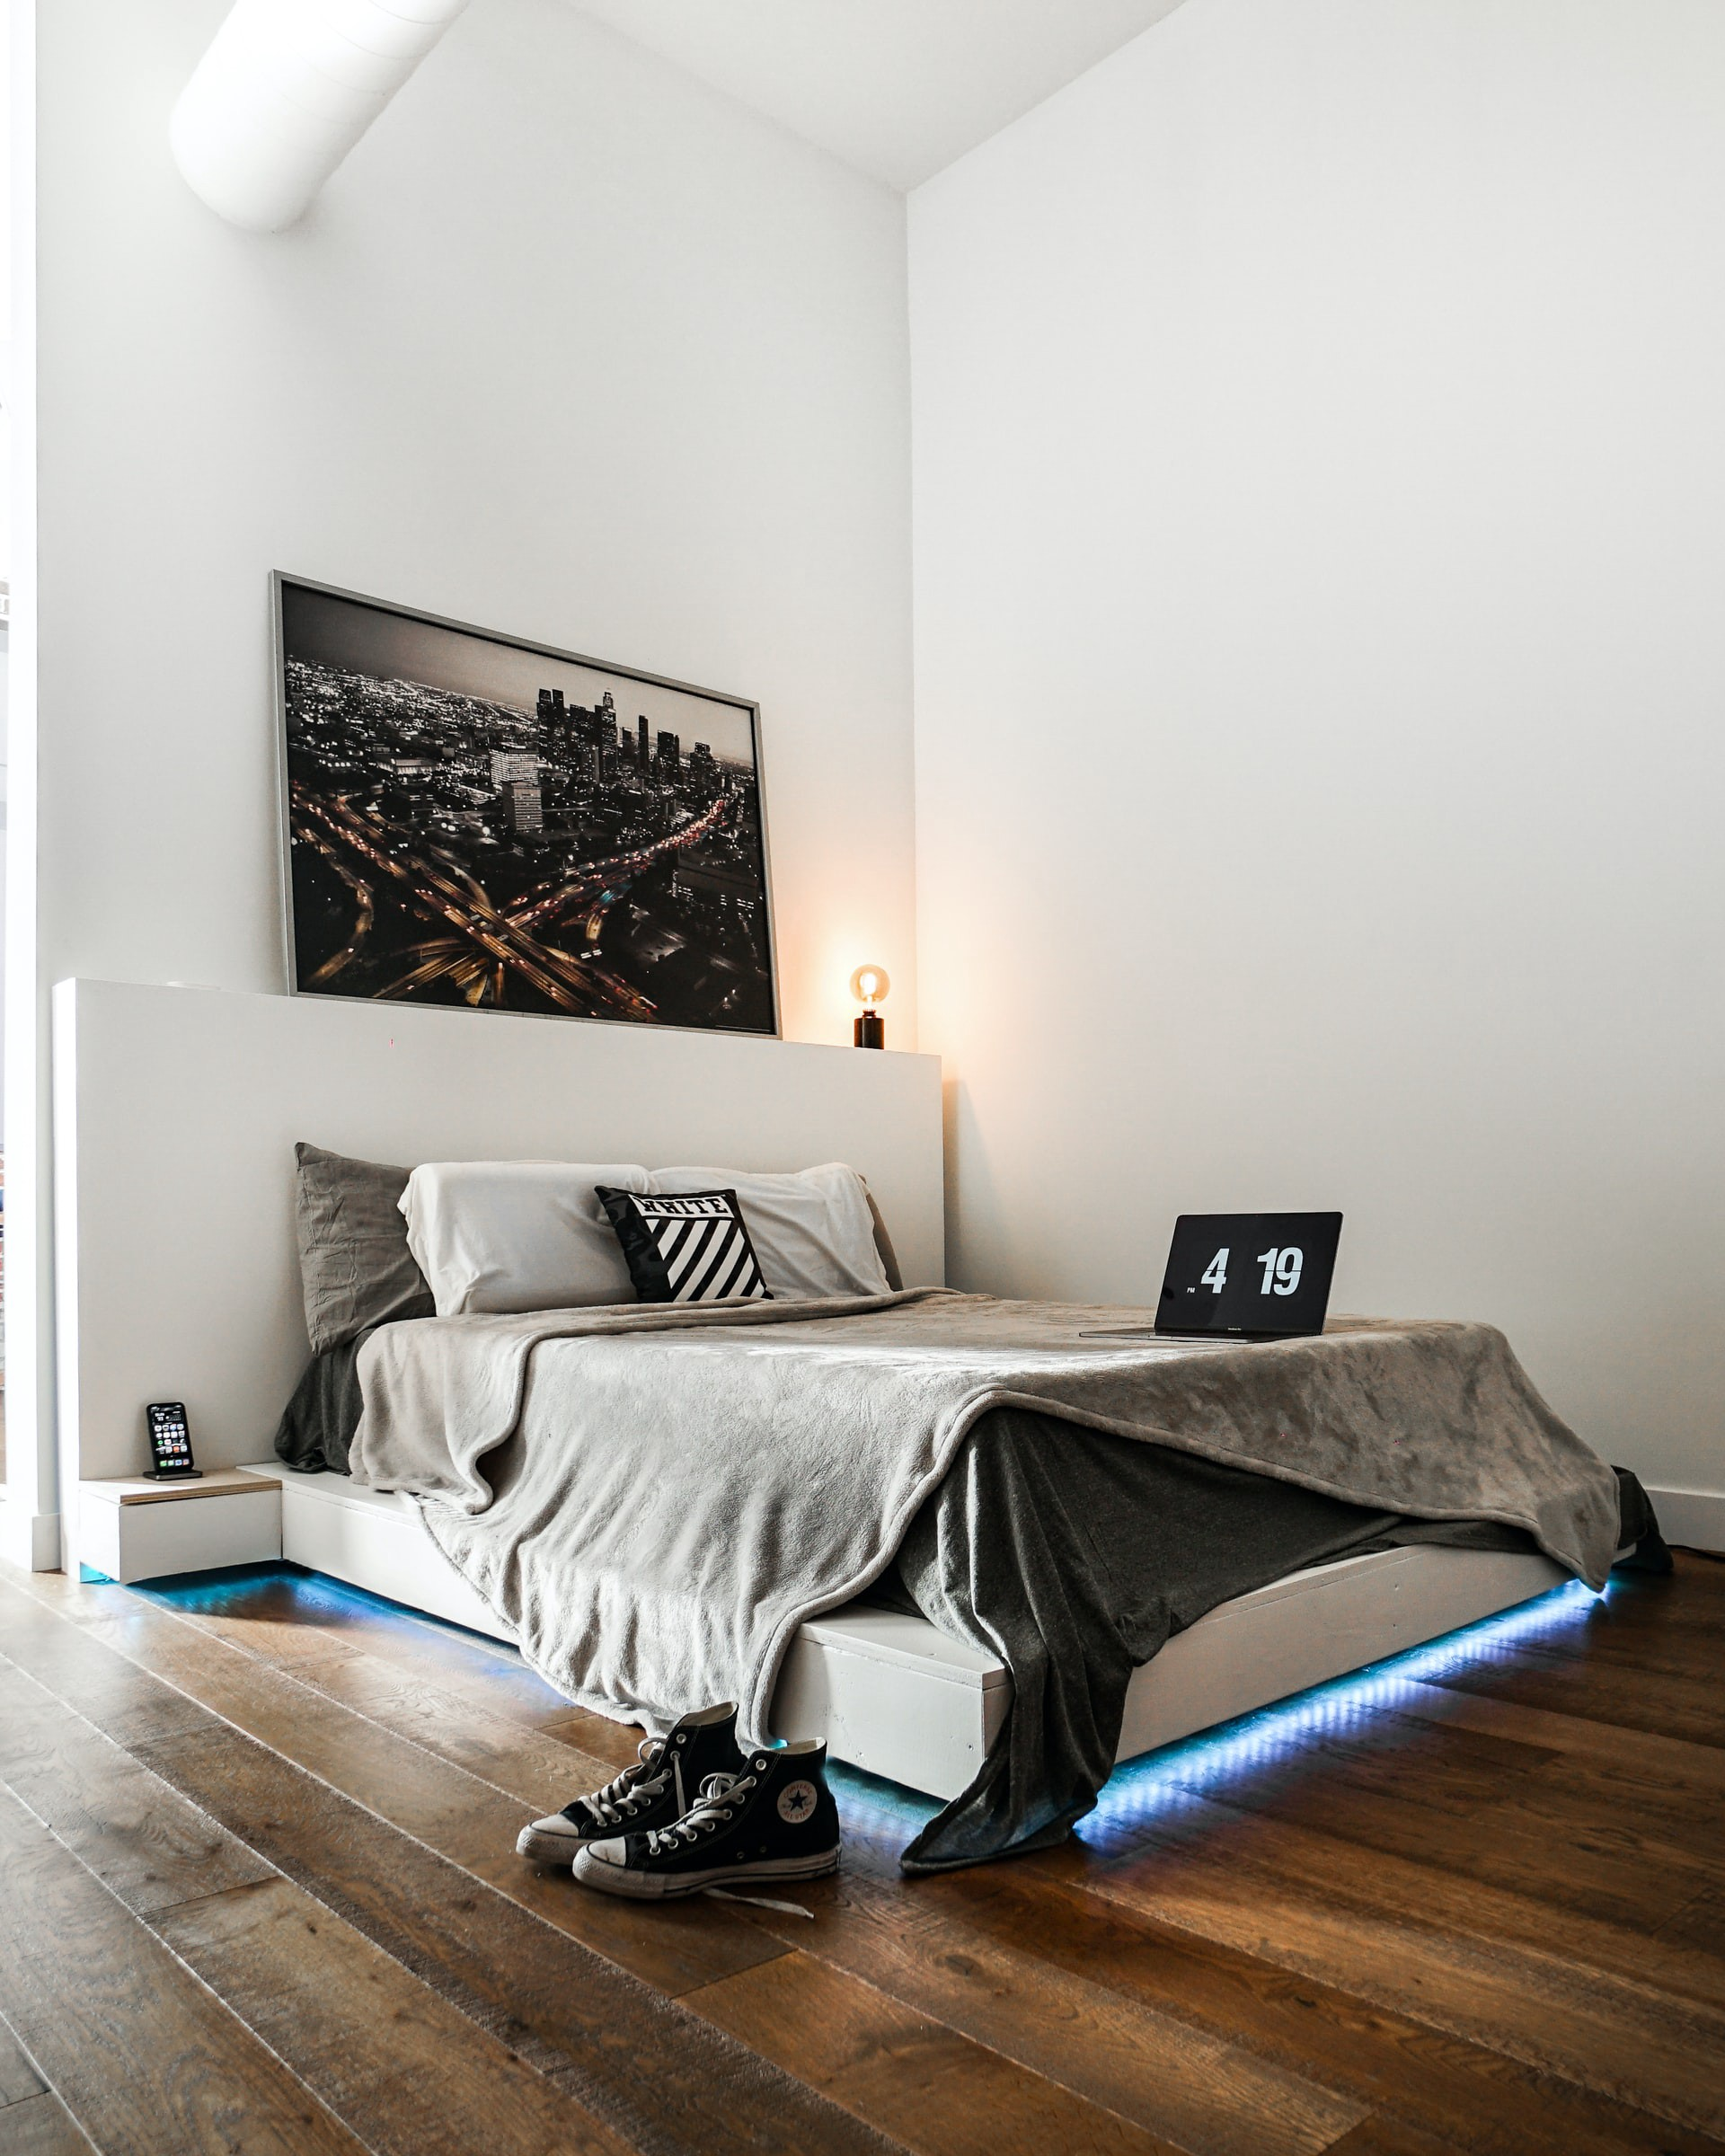 Ultra modern double bed with LED lights beneath it